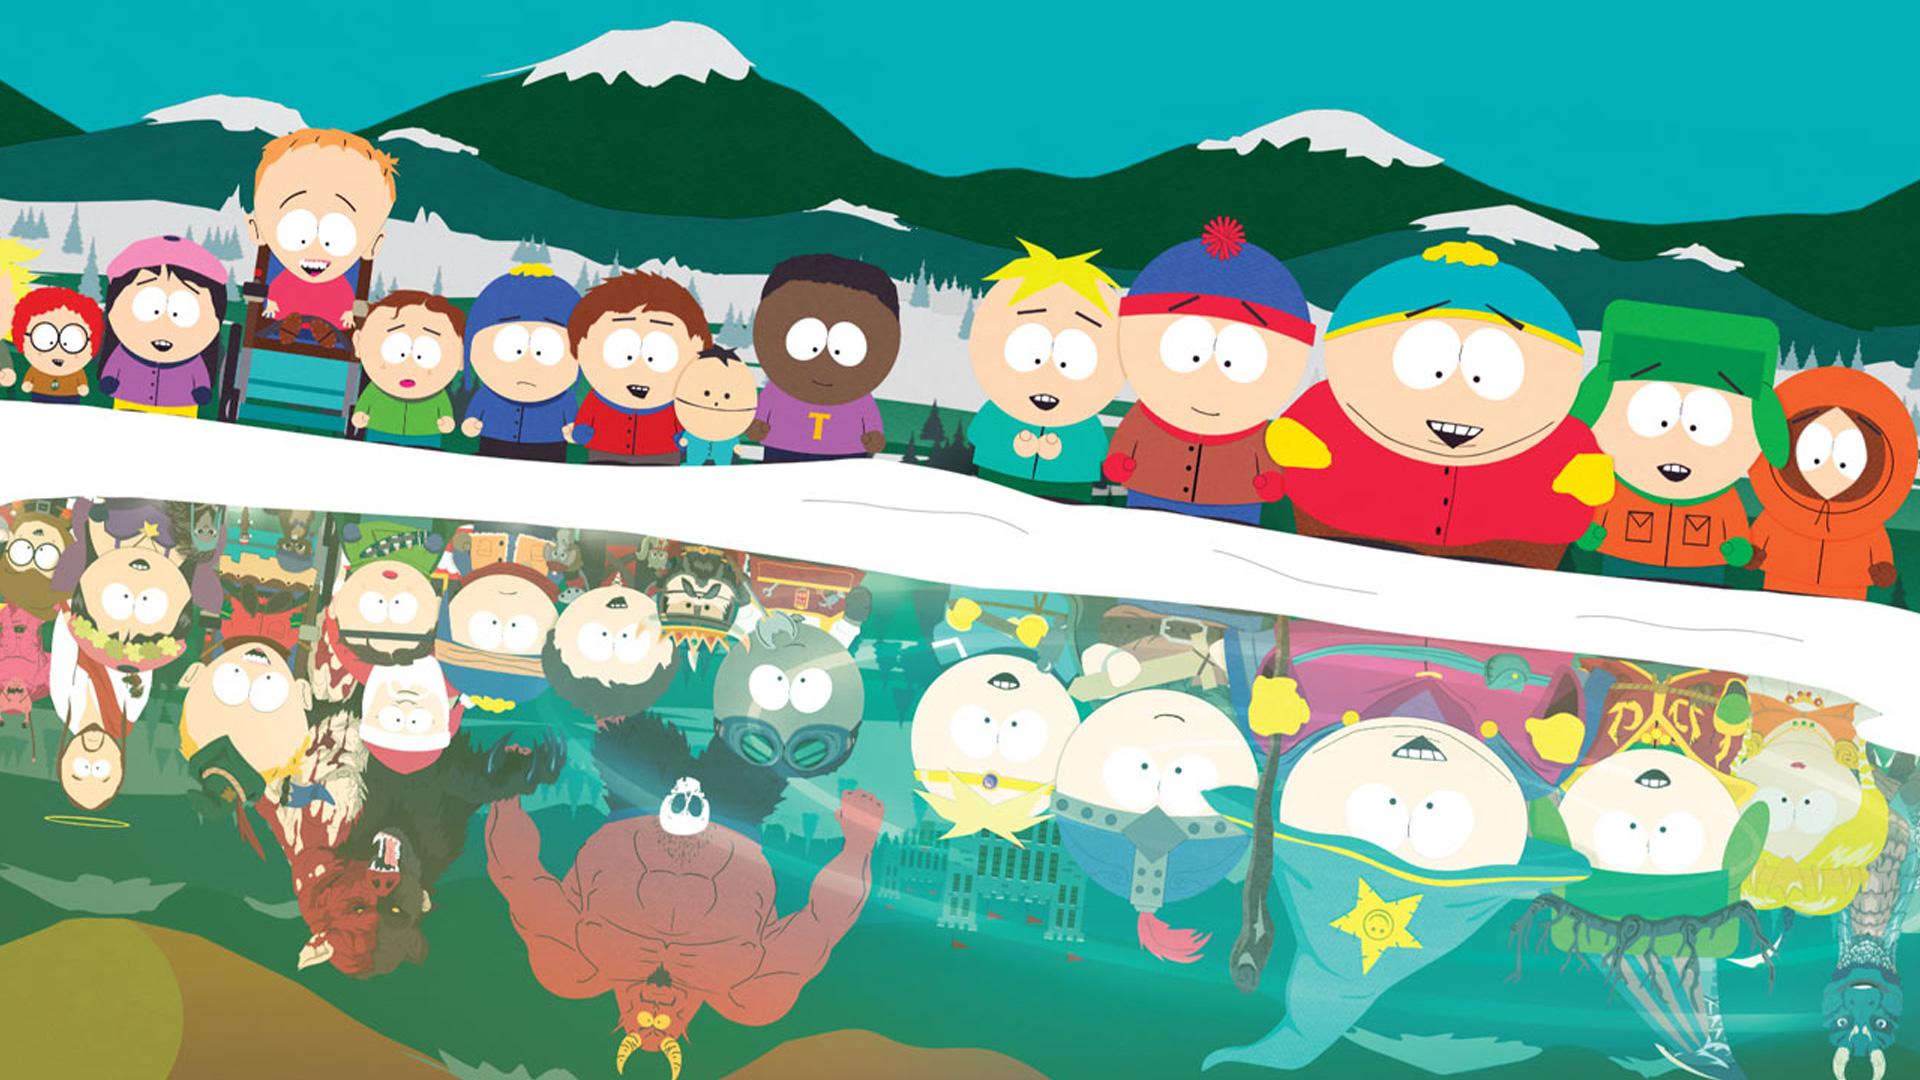 South Park The Stick of Truth wallpaper 5